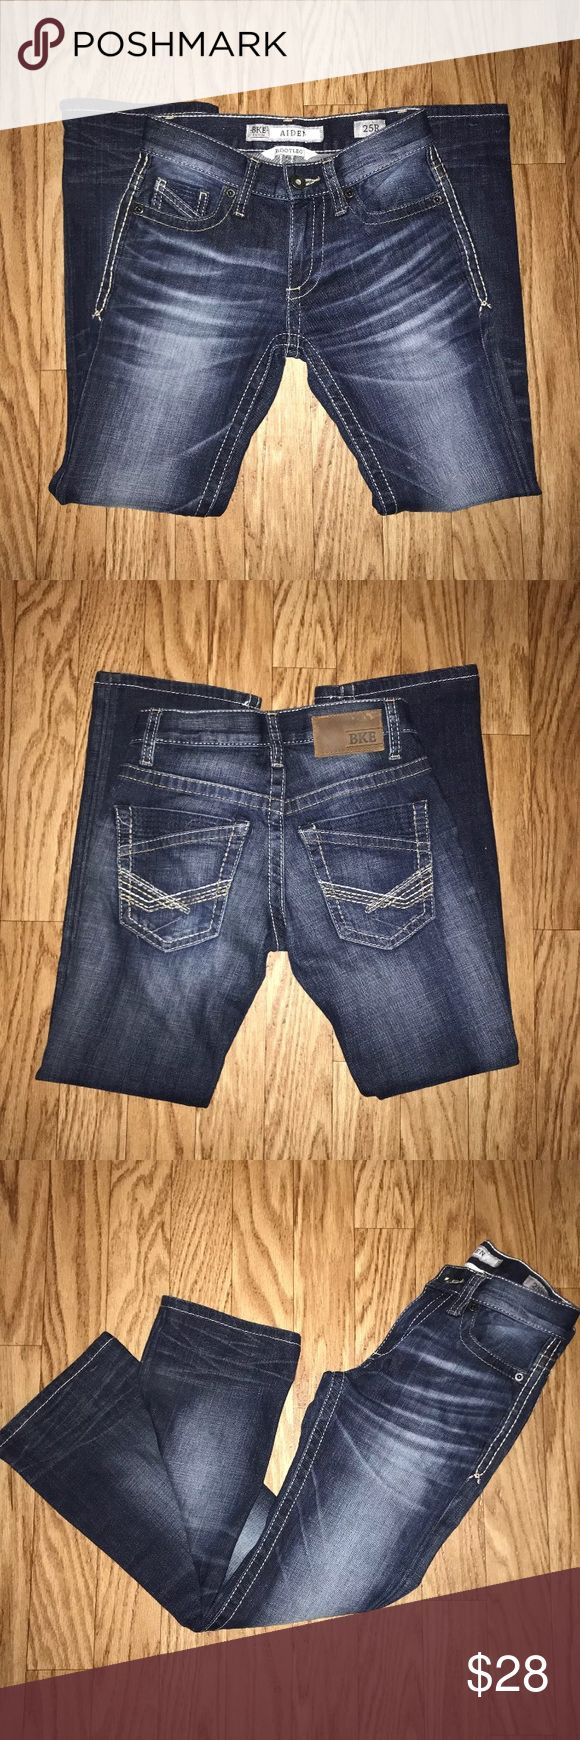 BKE Aiden Women Bootleg Jeans BKE Aiden Women Bootleg Jeans in excellent condition. No tears or holes.  Size:25r Color: Dark Denim Inseam: 27 inch Rise: 8 inch Length by inches: 35 inches BKE Jeans Boot Cut